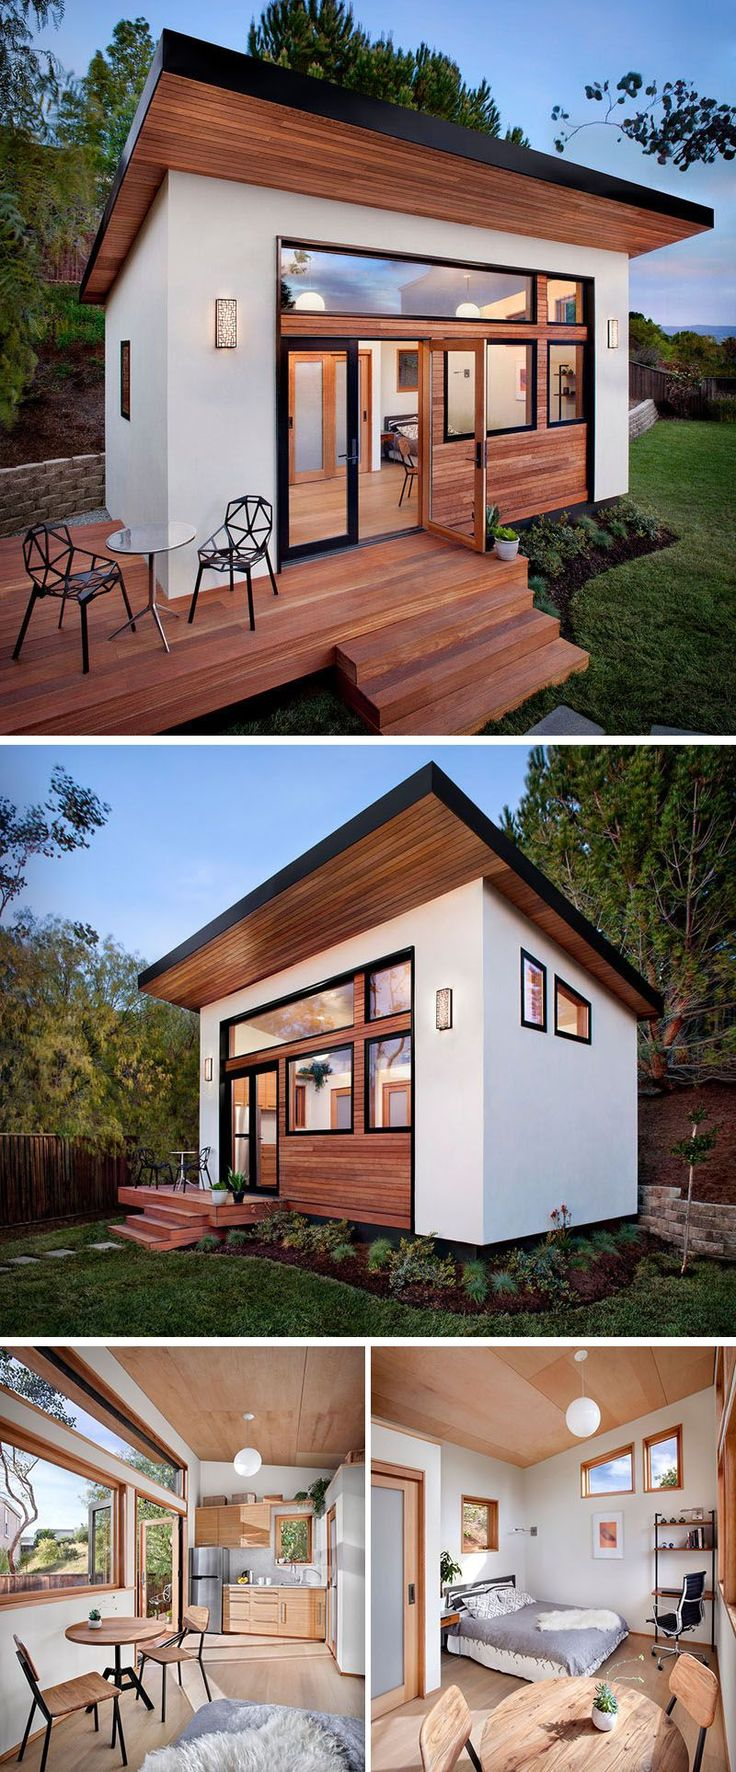 This small guest house was prefabricated before being put together in the backyard of this home and features a kitchen, bathroom, dining spot, sleeping area, and desk space.